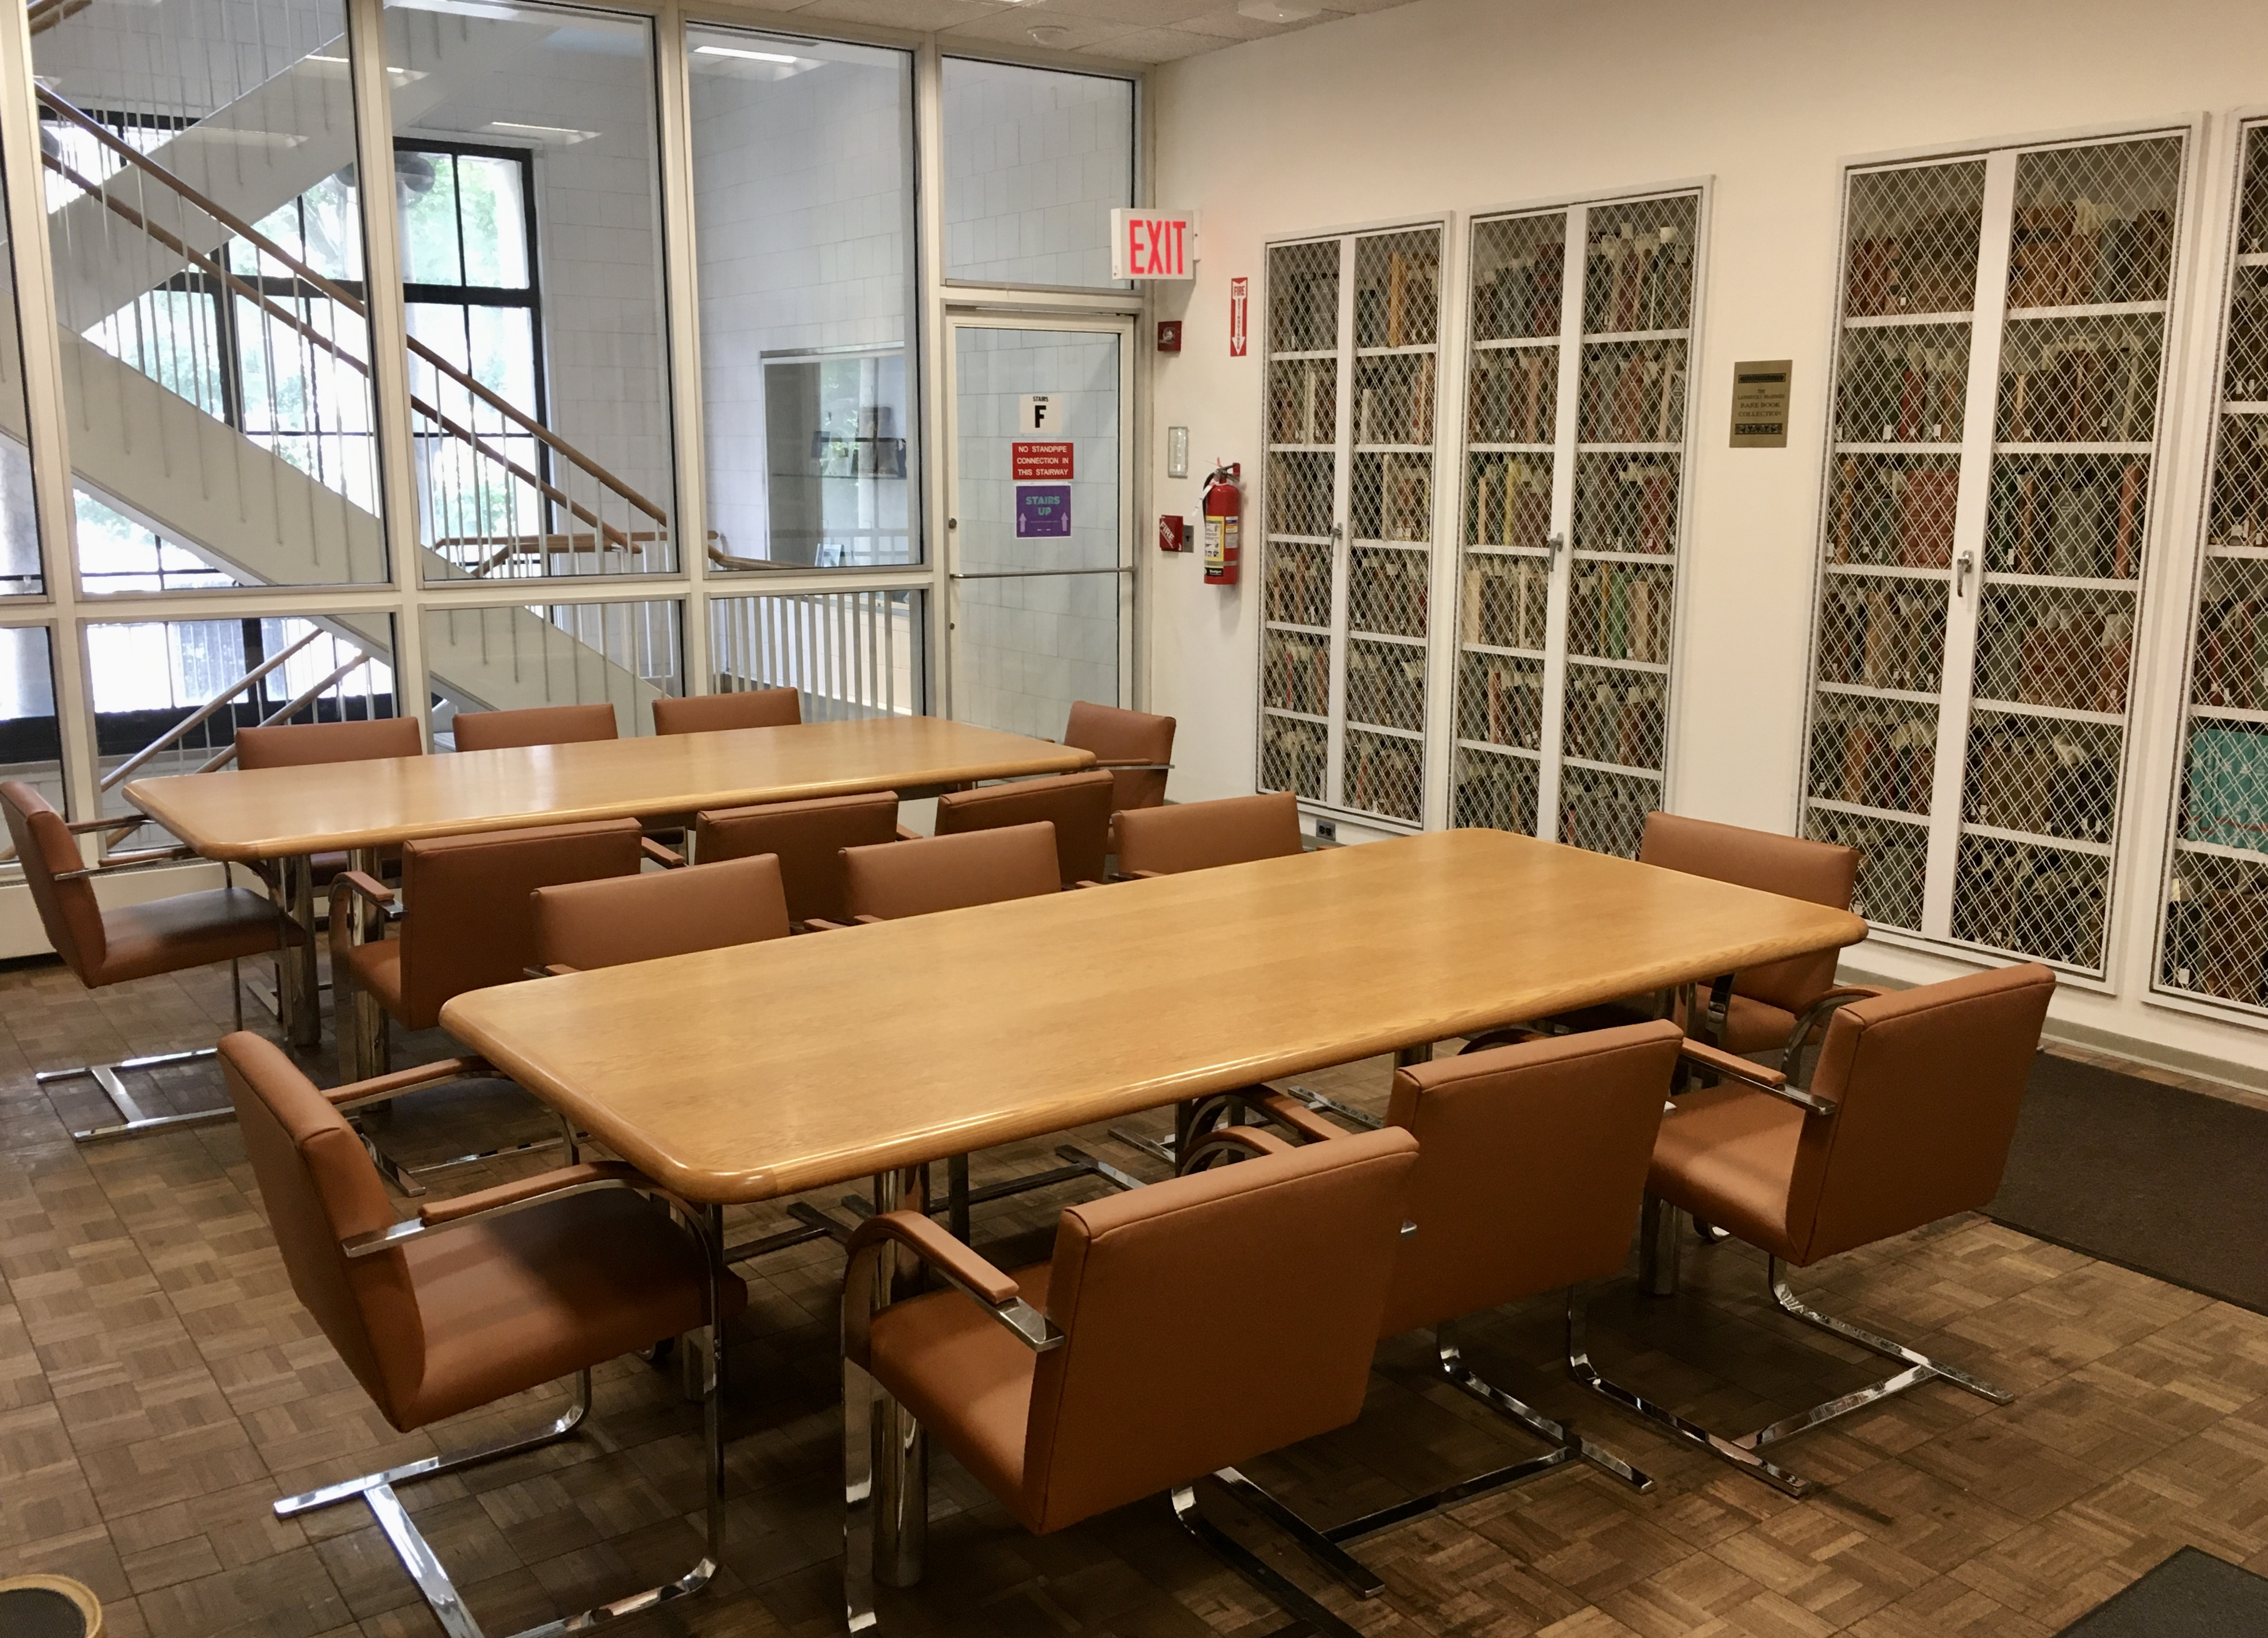 Tables, chairs and bookshelves in the Reading Room of the Conservation Center Library.